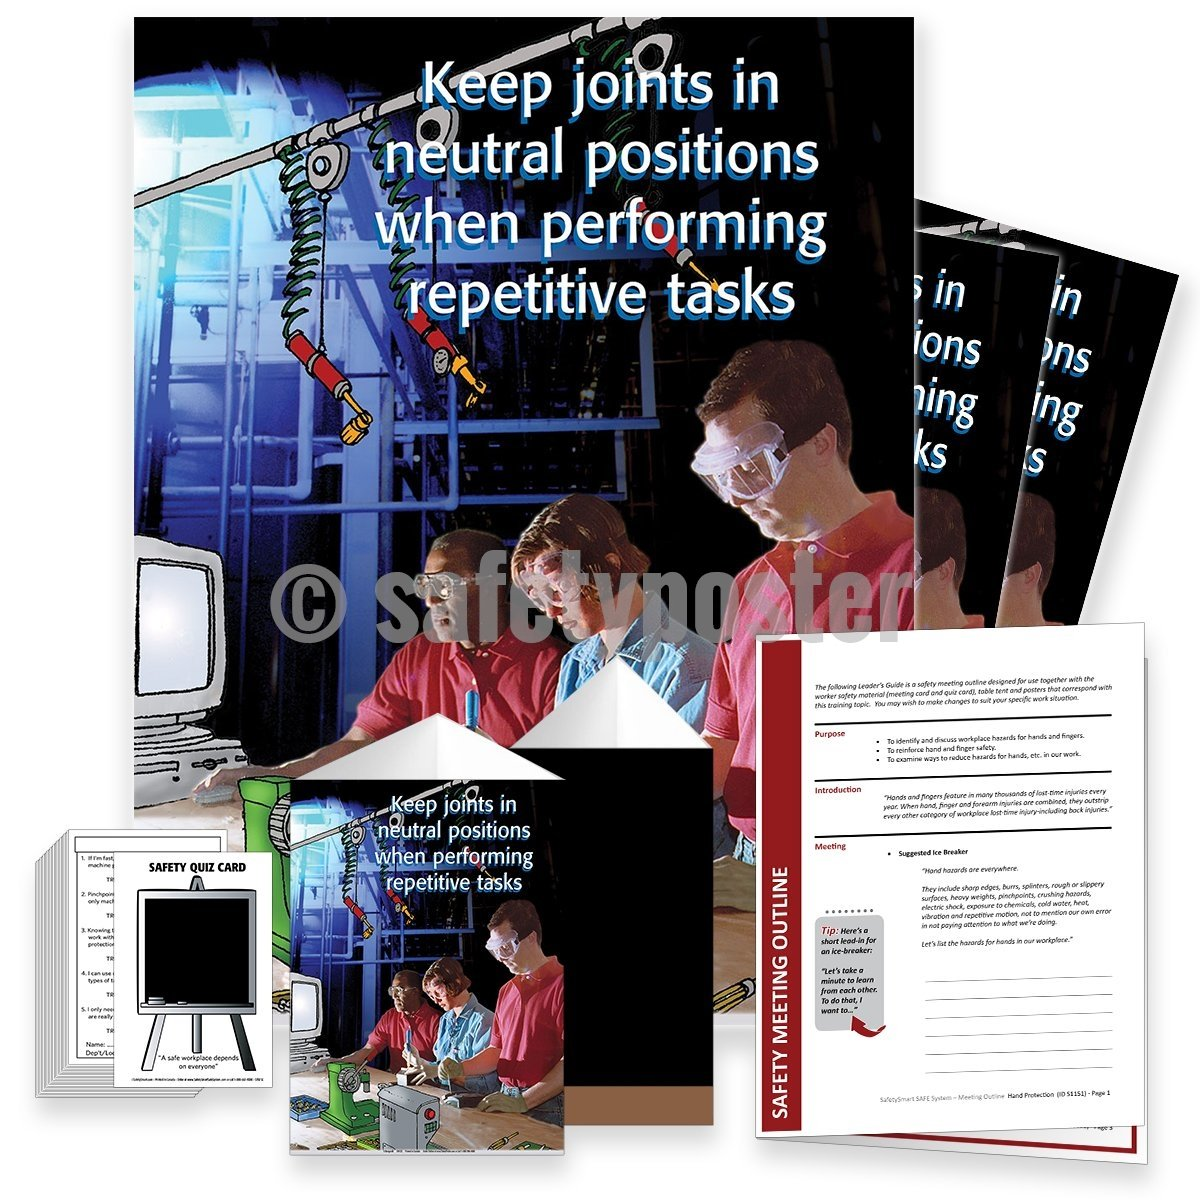 Safety Meeting Kit - Keep Joints In Neutral Positions For Repetitive Tasks Kits